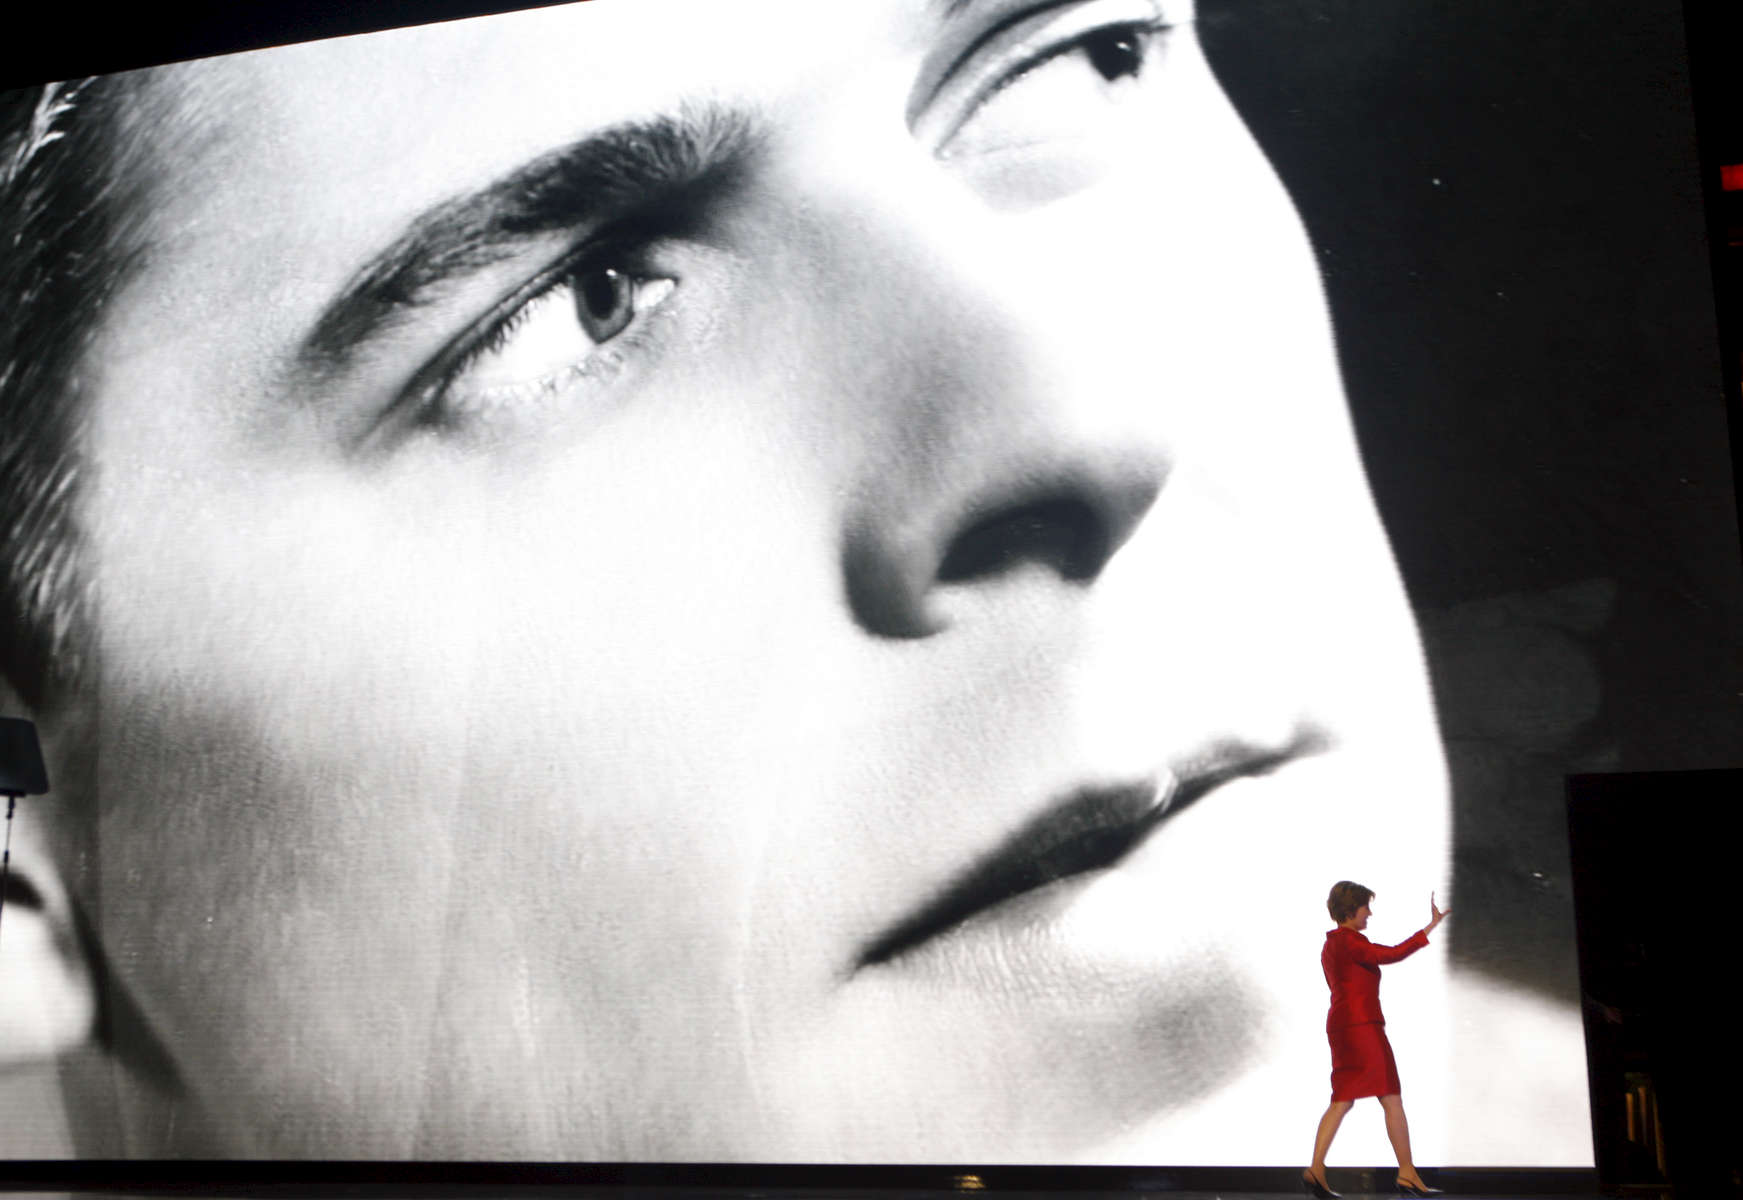 First Lady Laura Bush waves after her speech as a photo of a young Ronald Reagan is screened behind her, during the Republican National Convention at the Xcel Energy Center